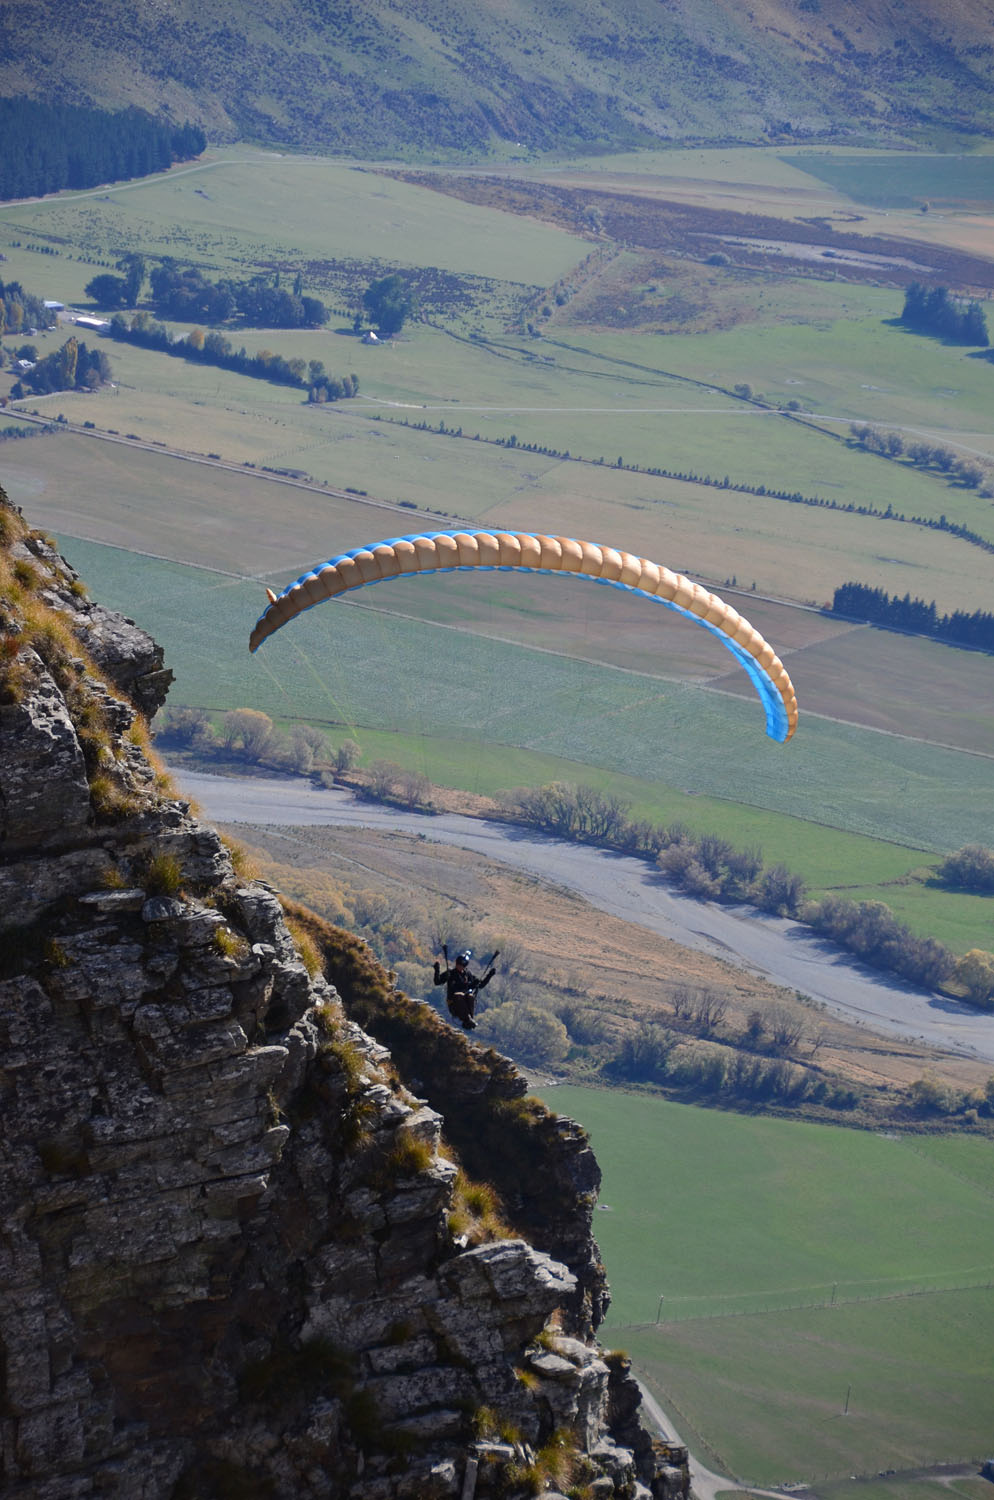 PG2 Course - Infinity Paragliding 12